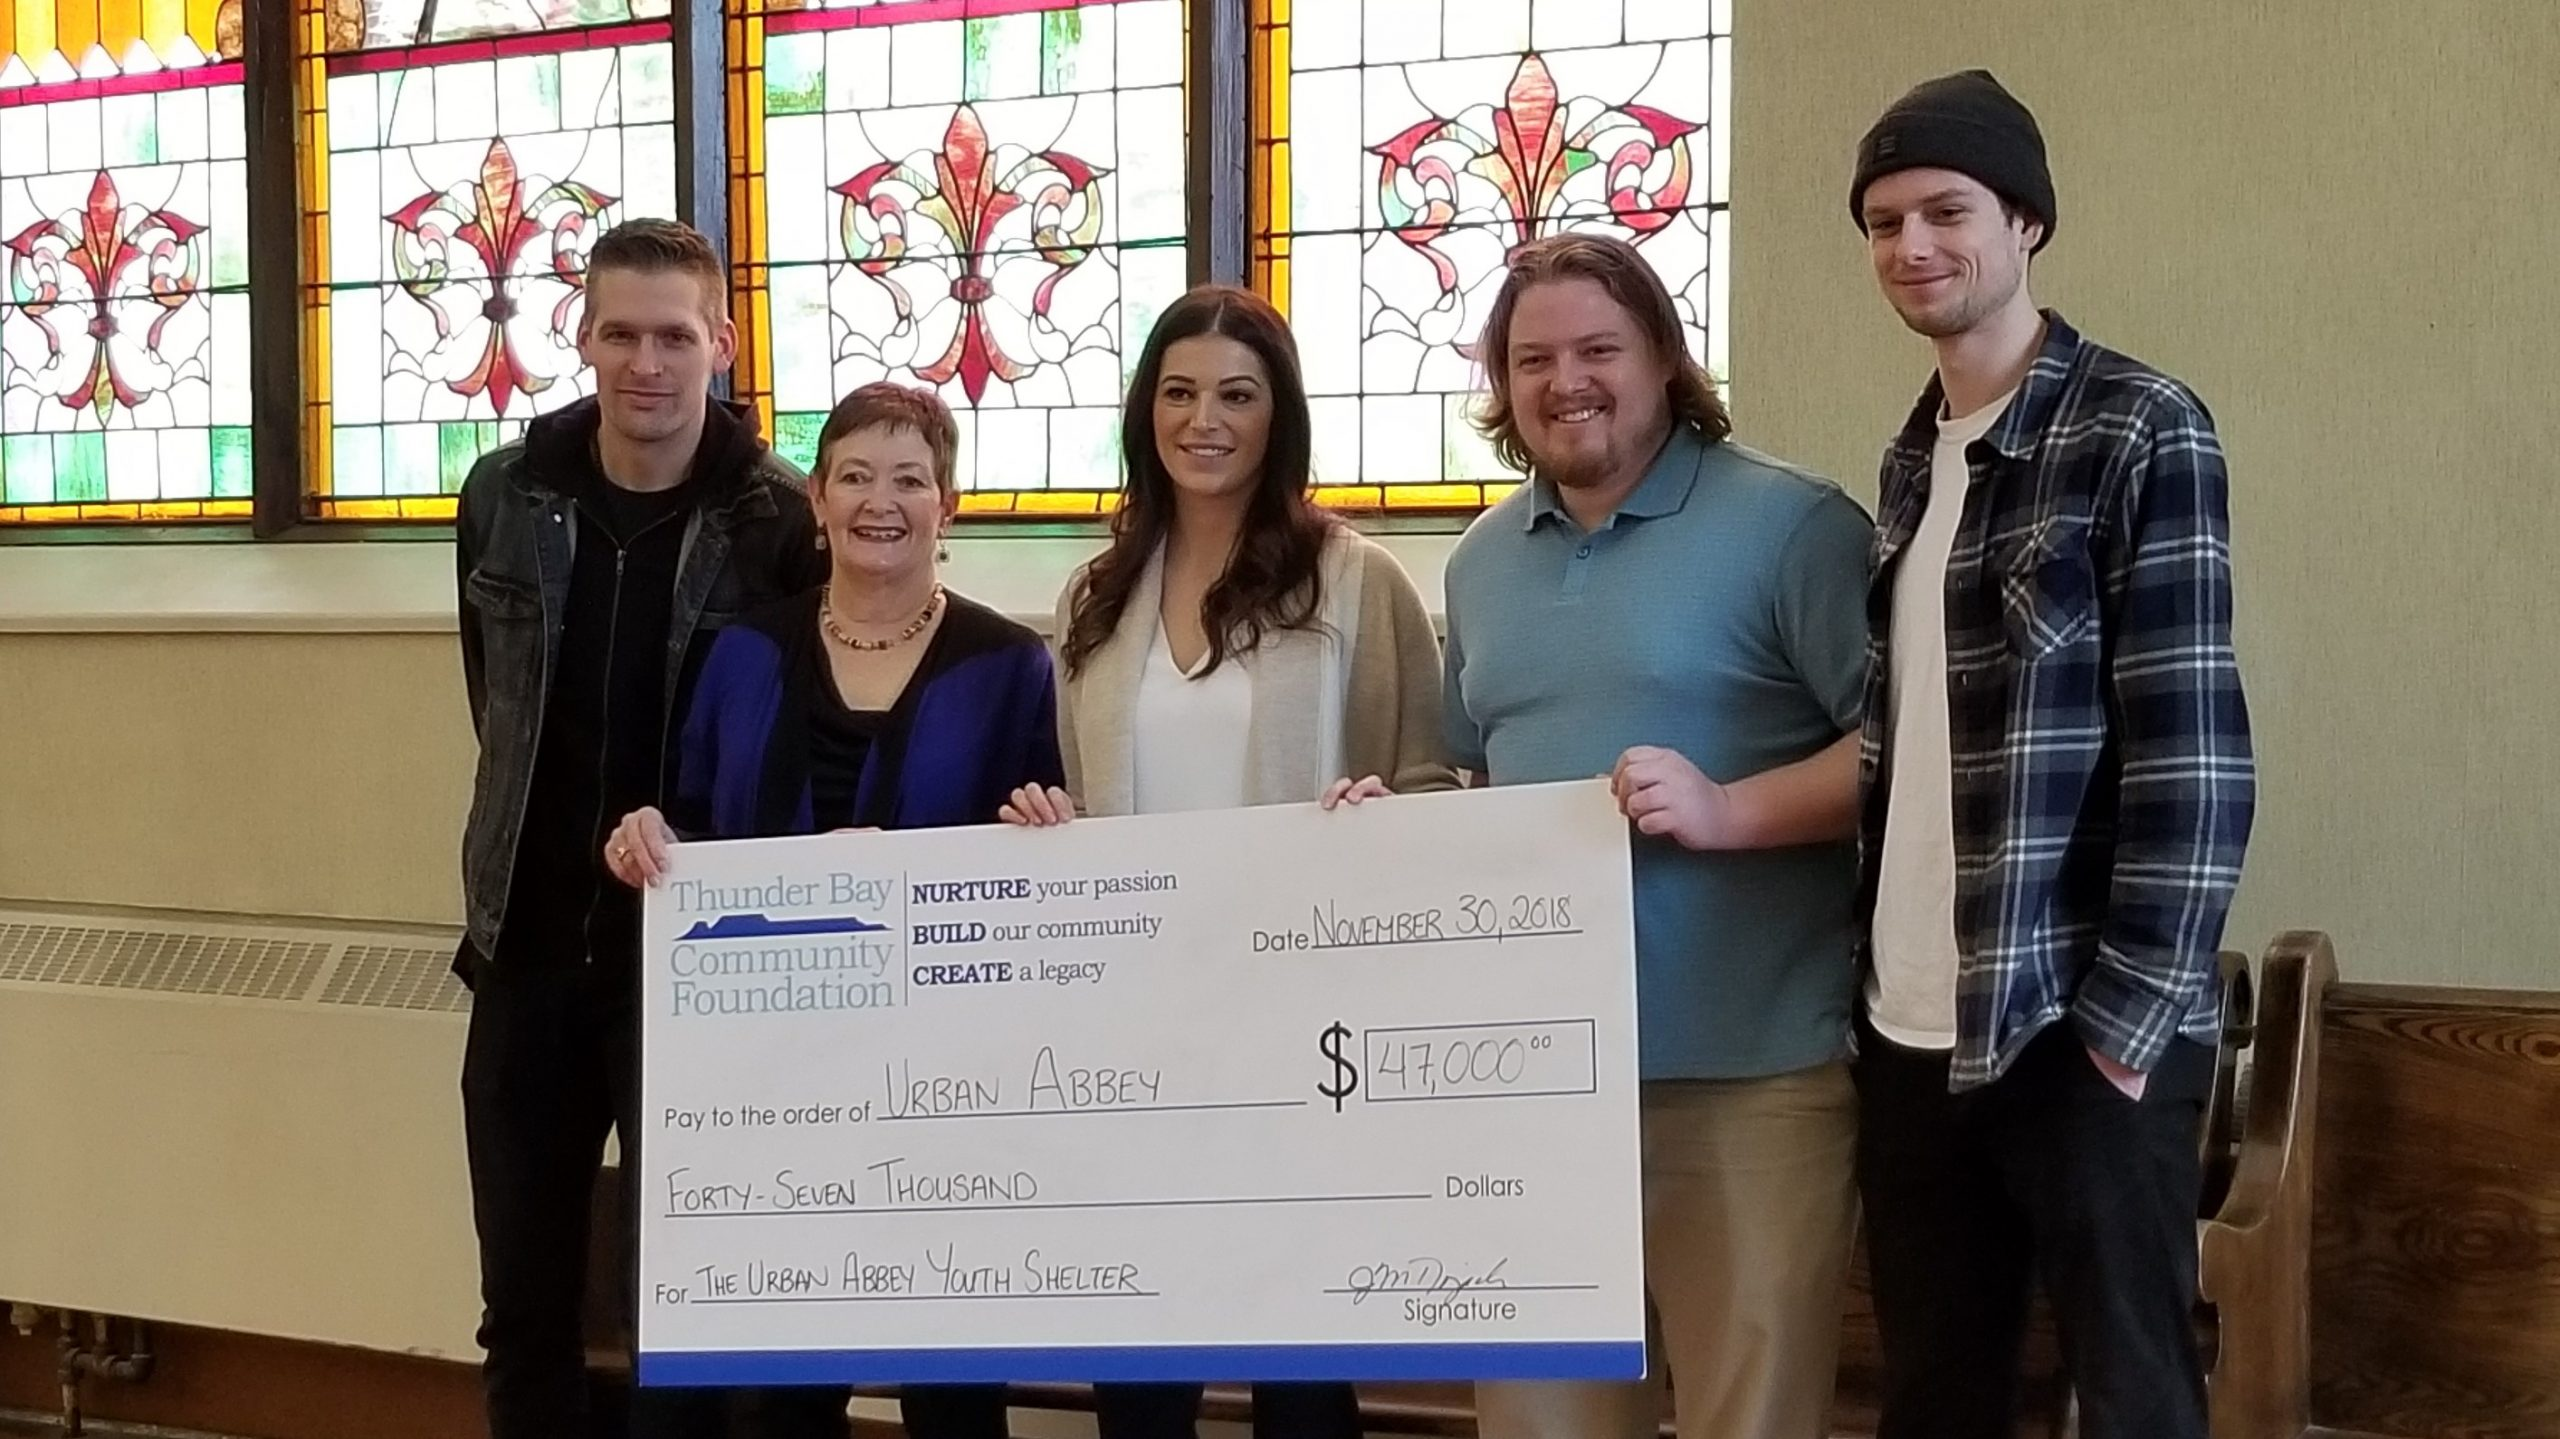 Urban Abbey Youth Shelter Gets $47K